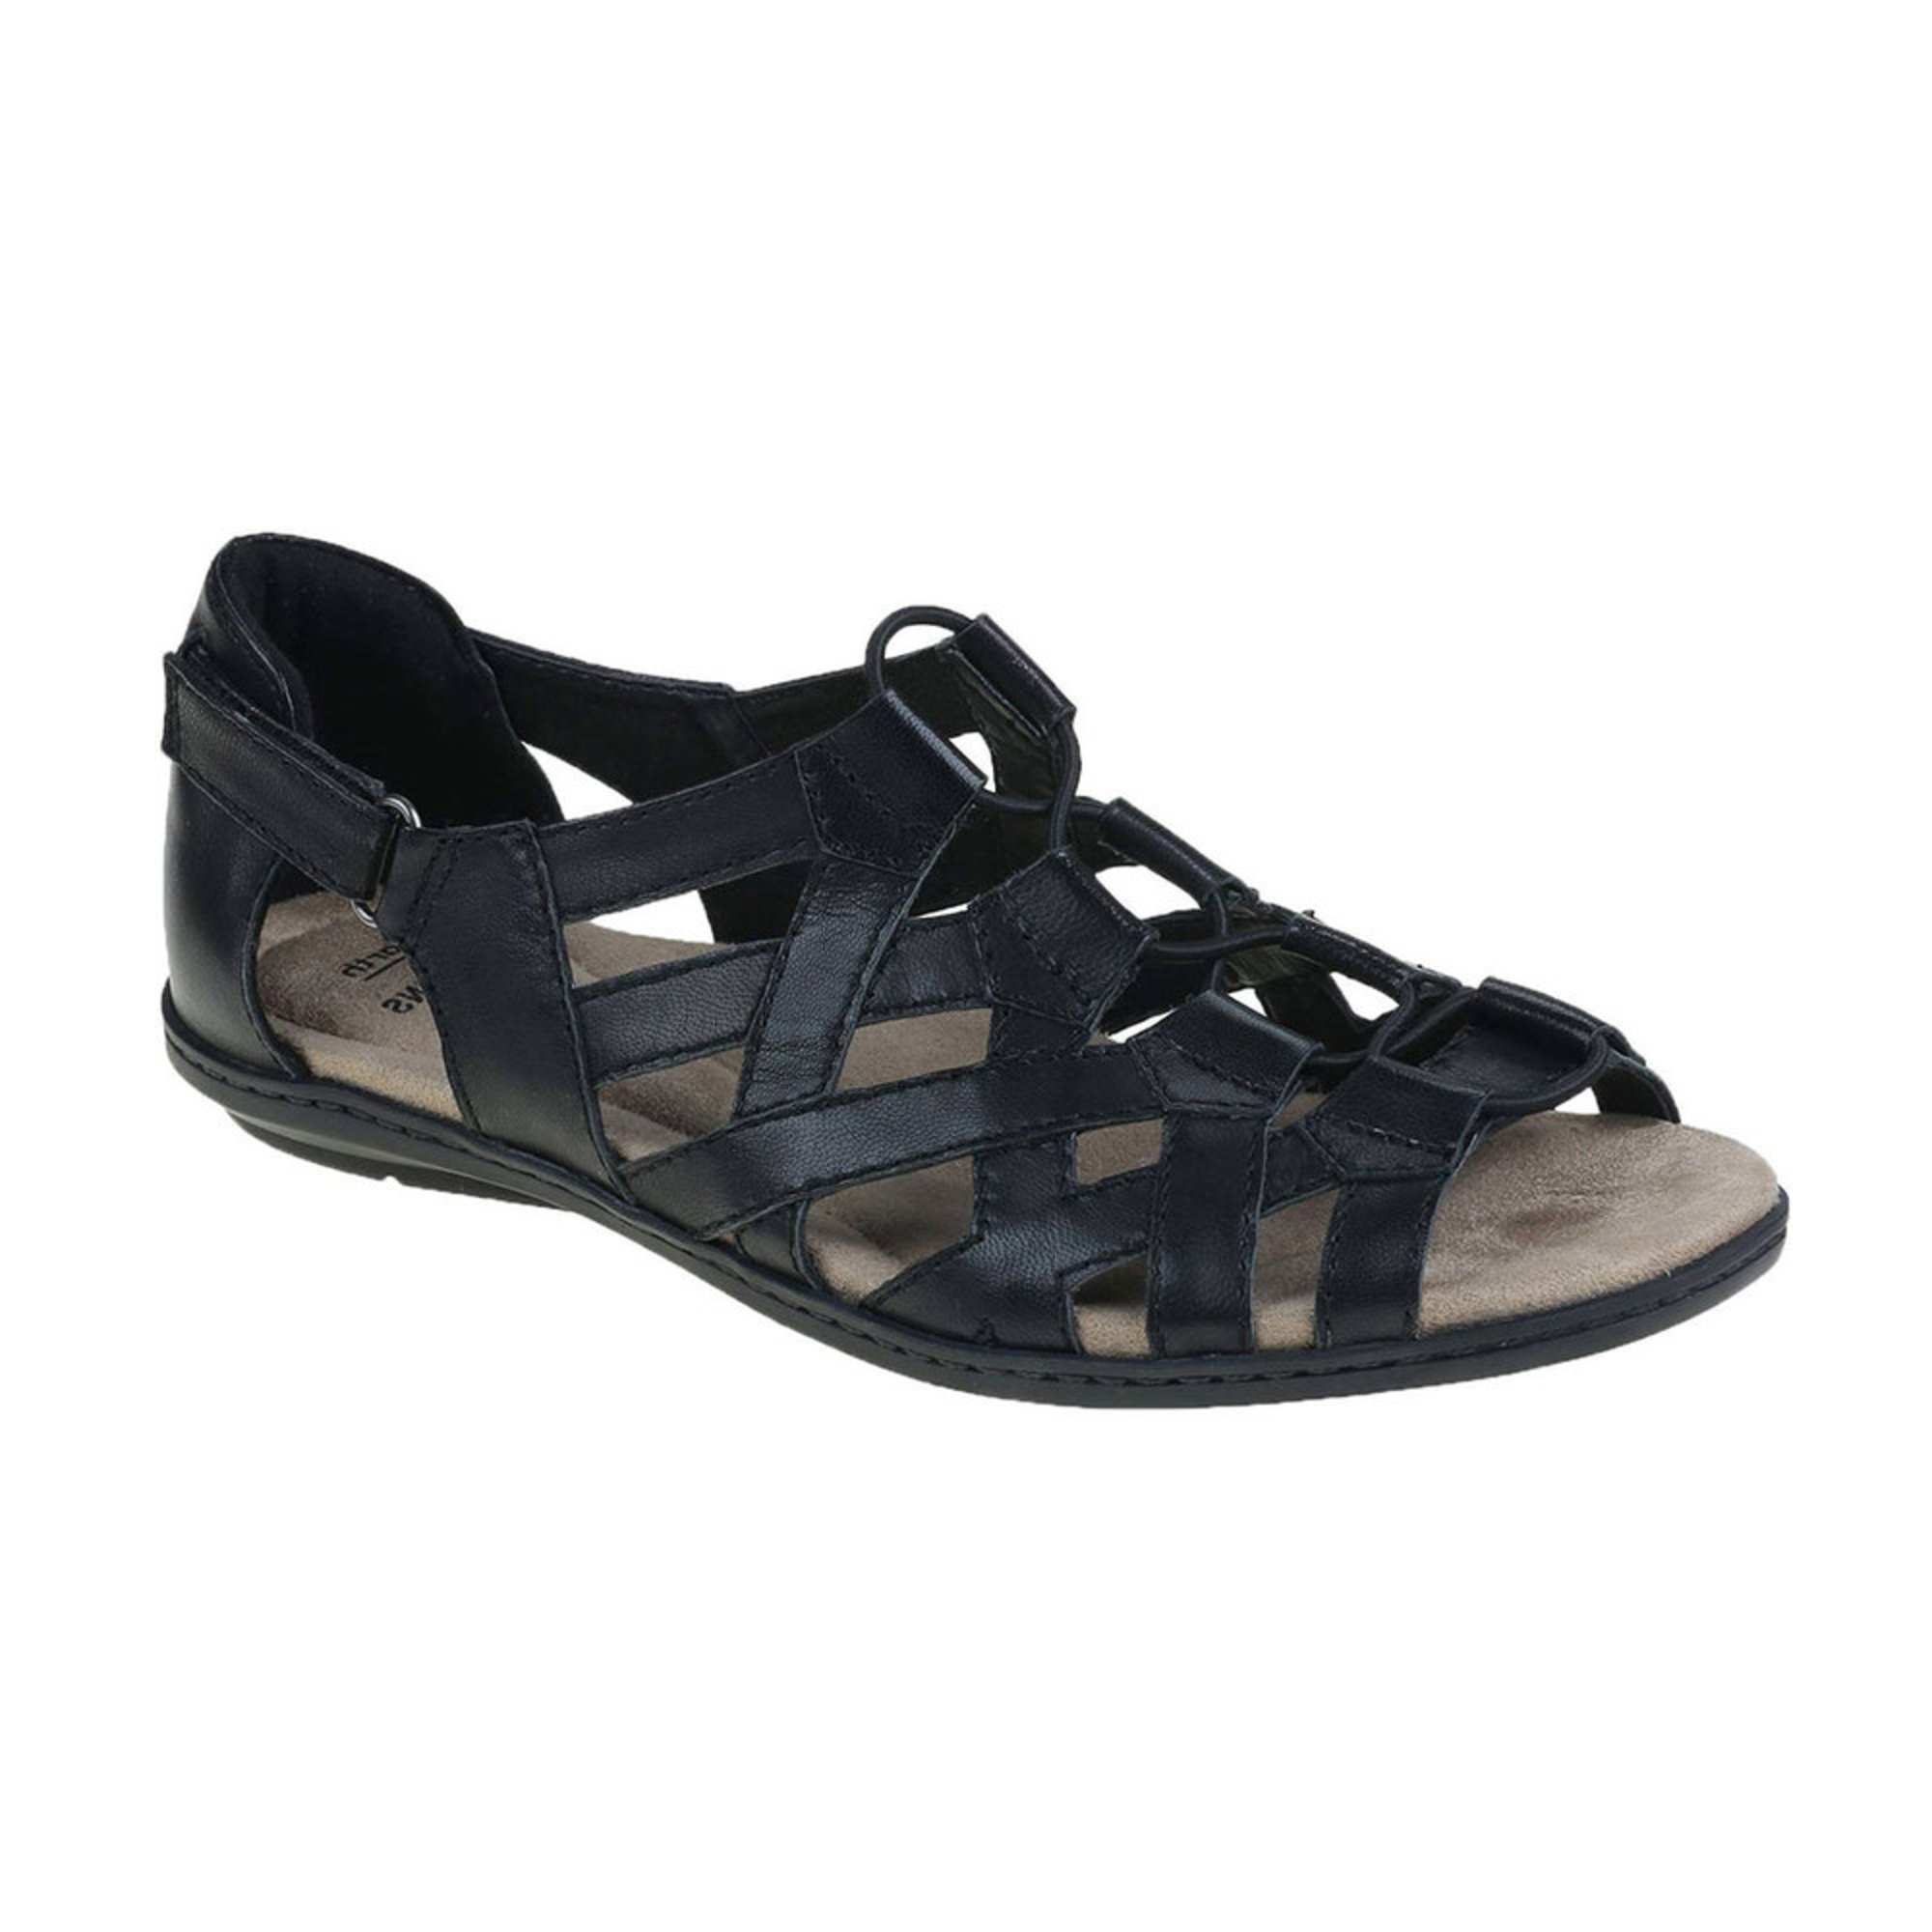 c633518a8 Earth Origins Women's Belle Bridget Sandal | Women's Sandals | Shoes ...